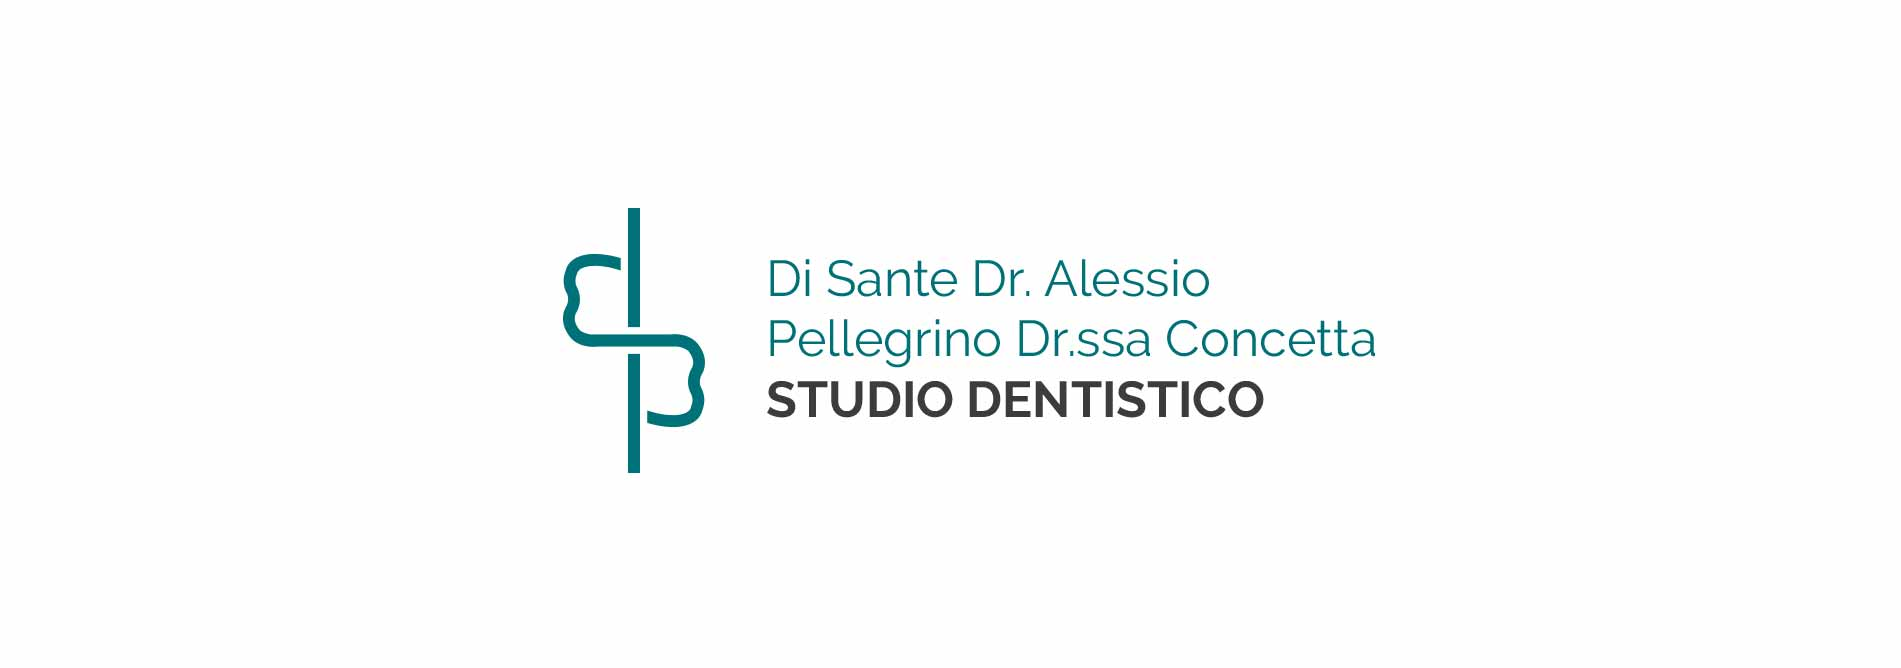 idea variante alternativa logo studio dentistico